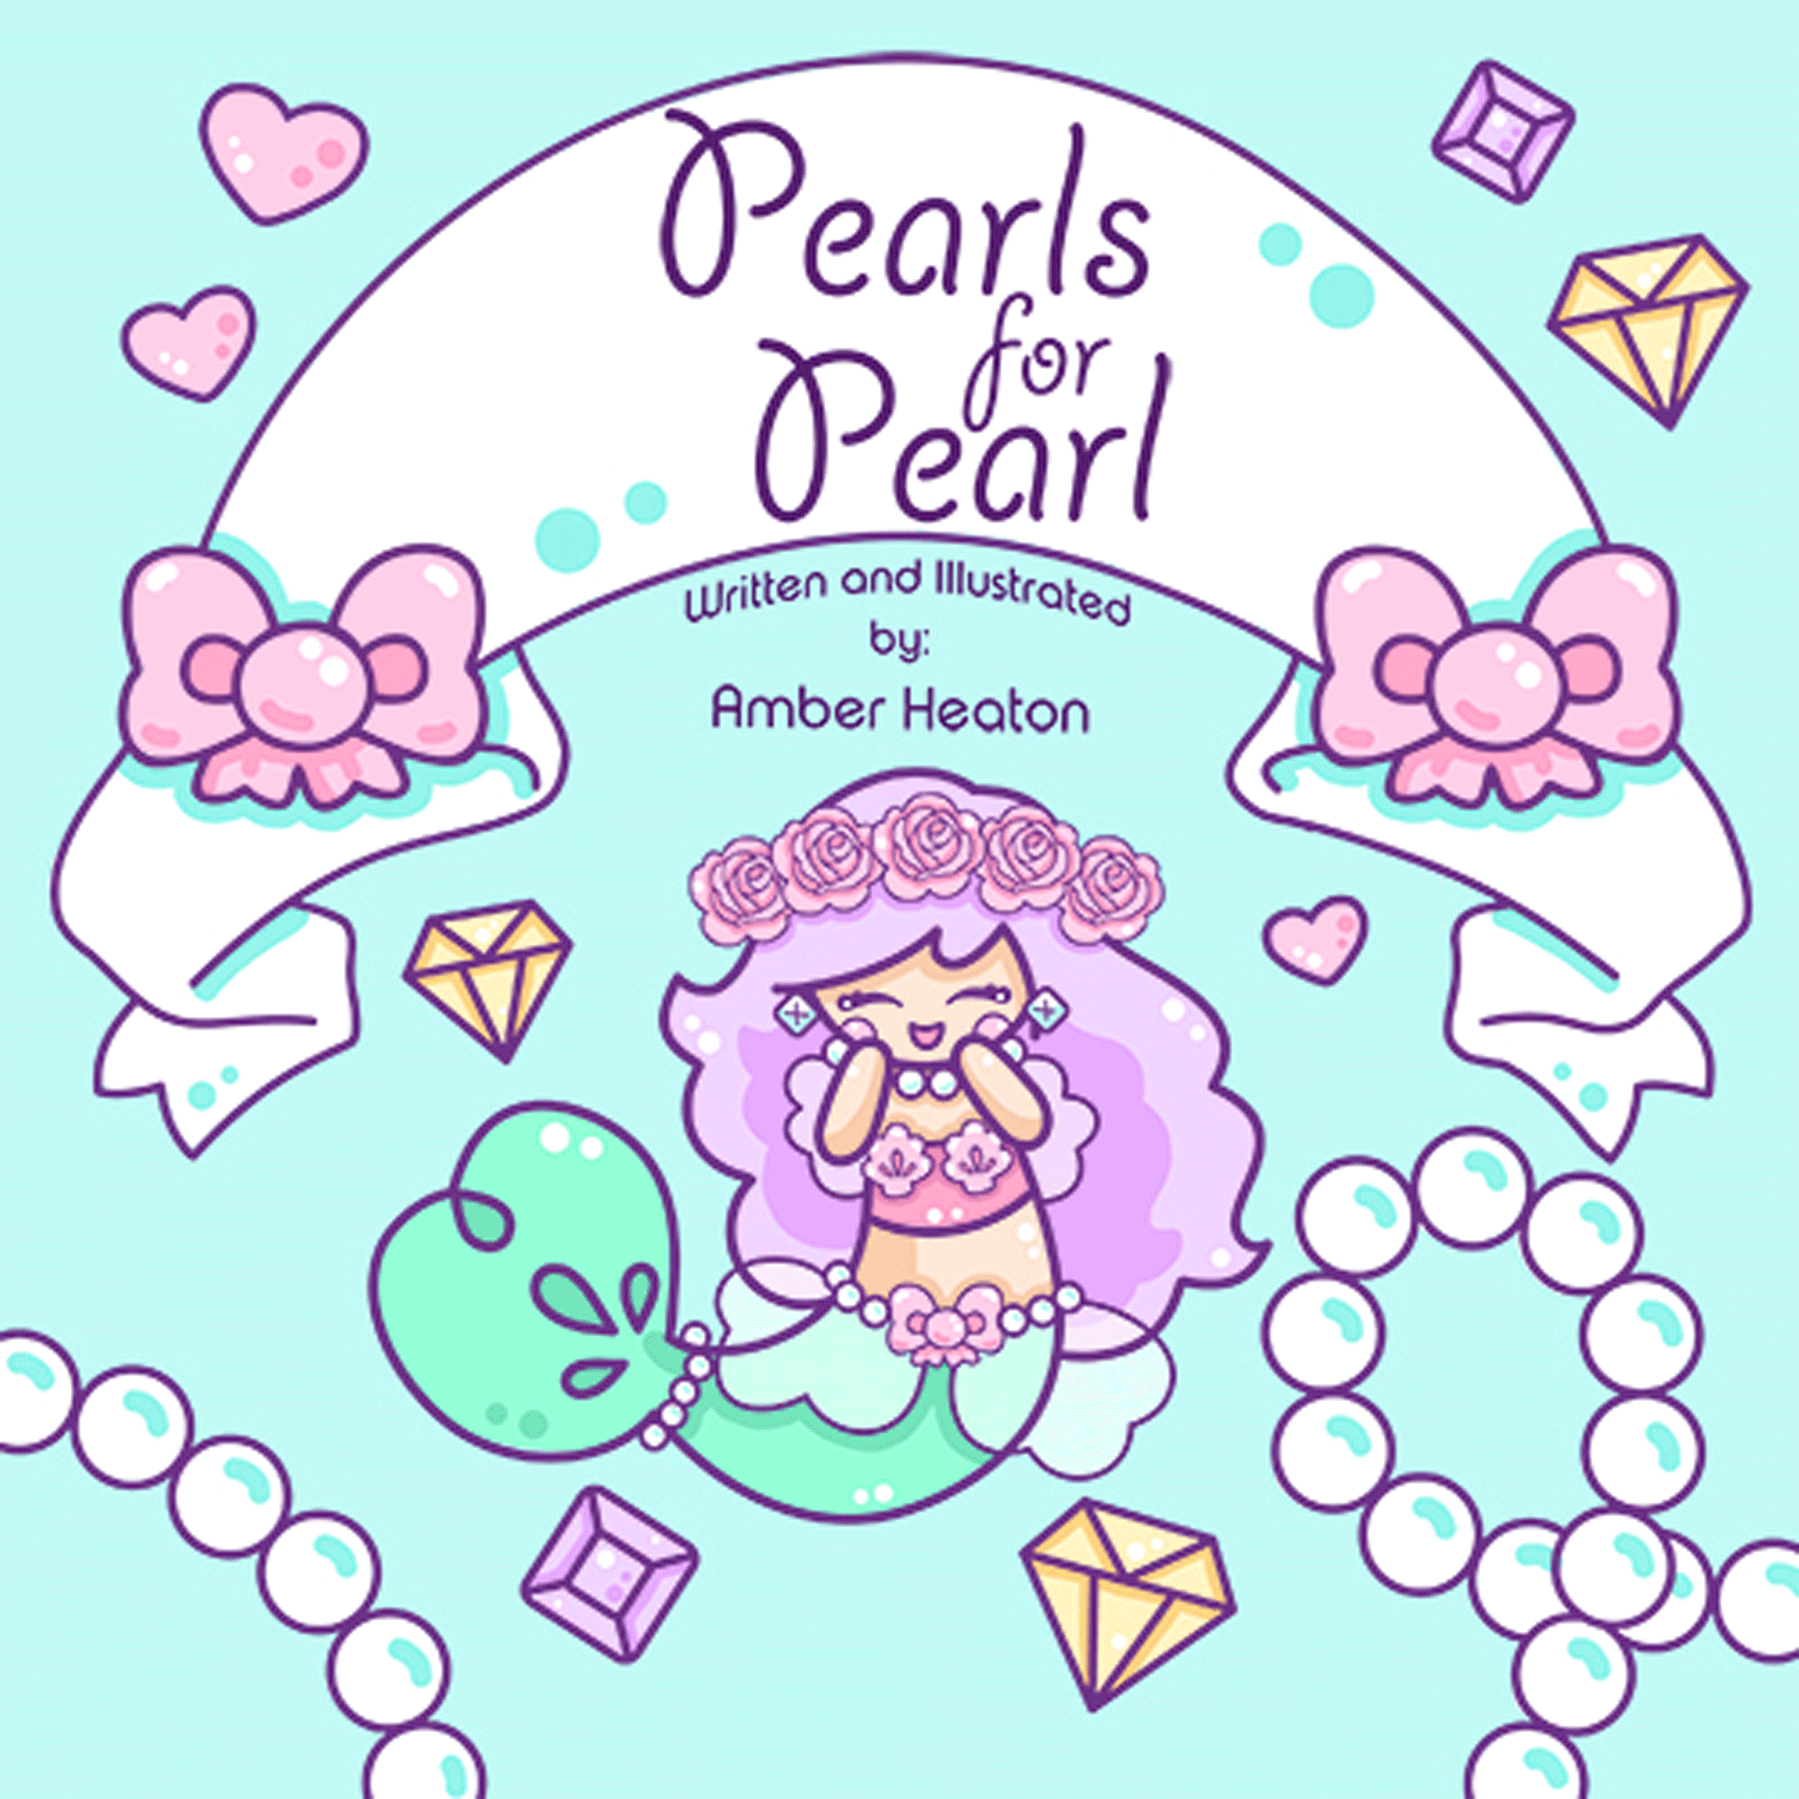 Press Release: Pearls for Pearl by Amber Heaton